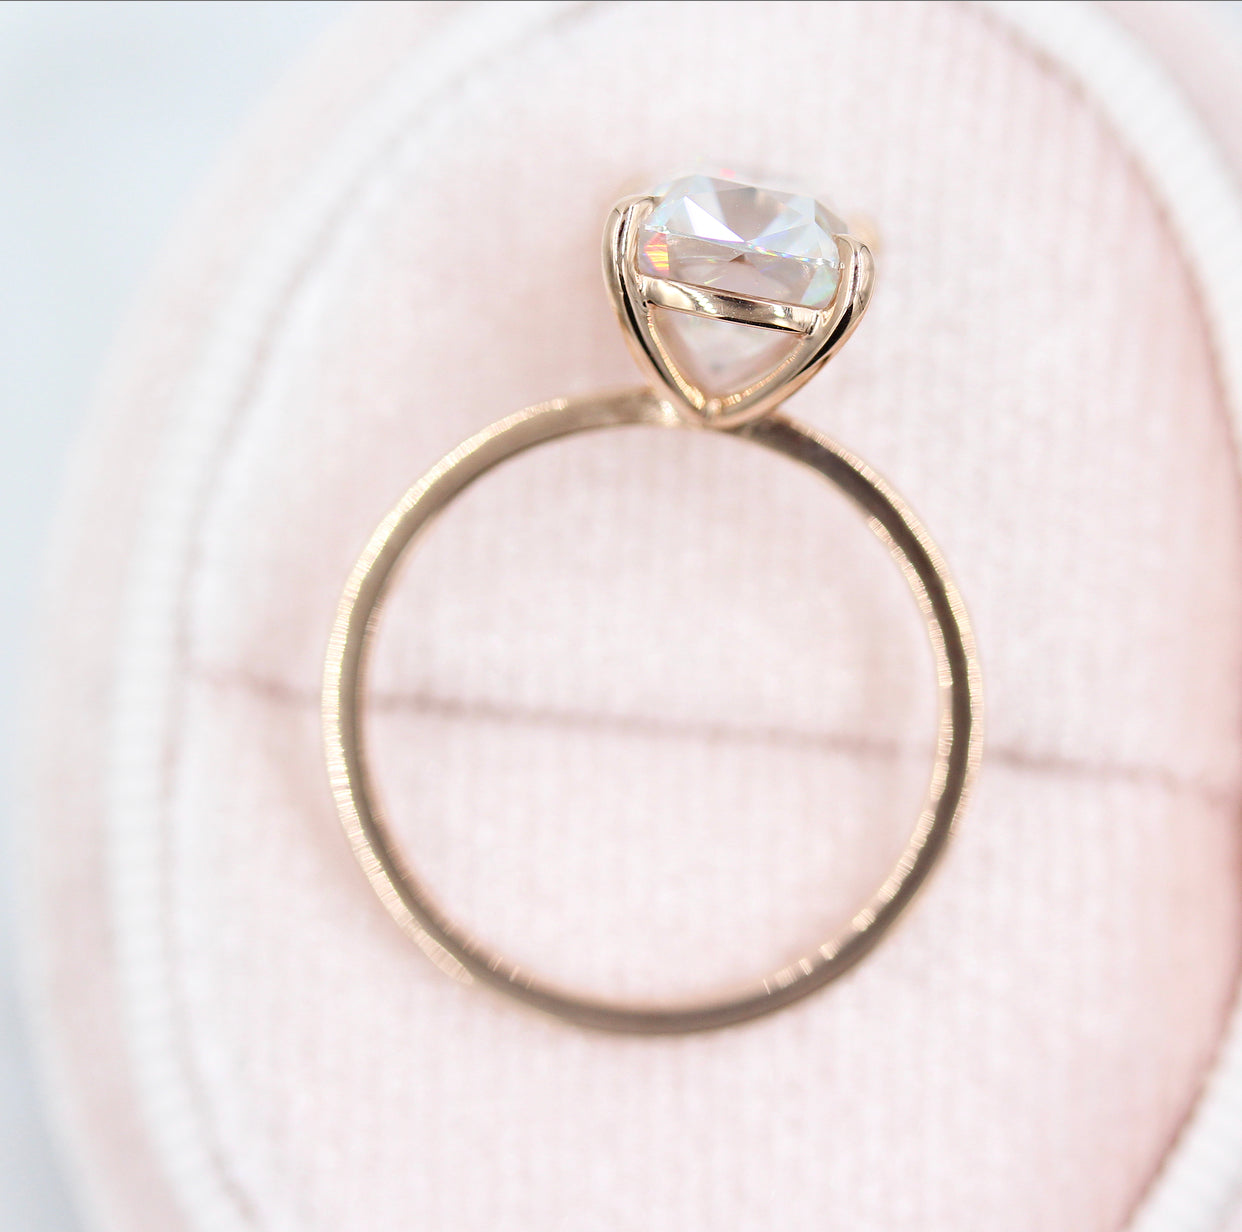 The Eri Ring